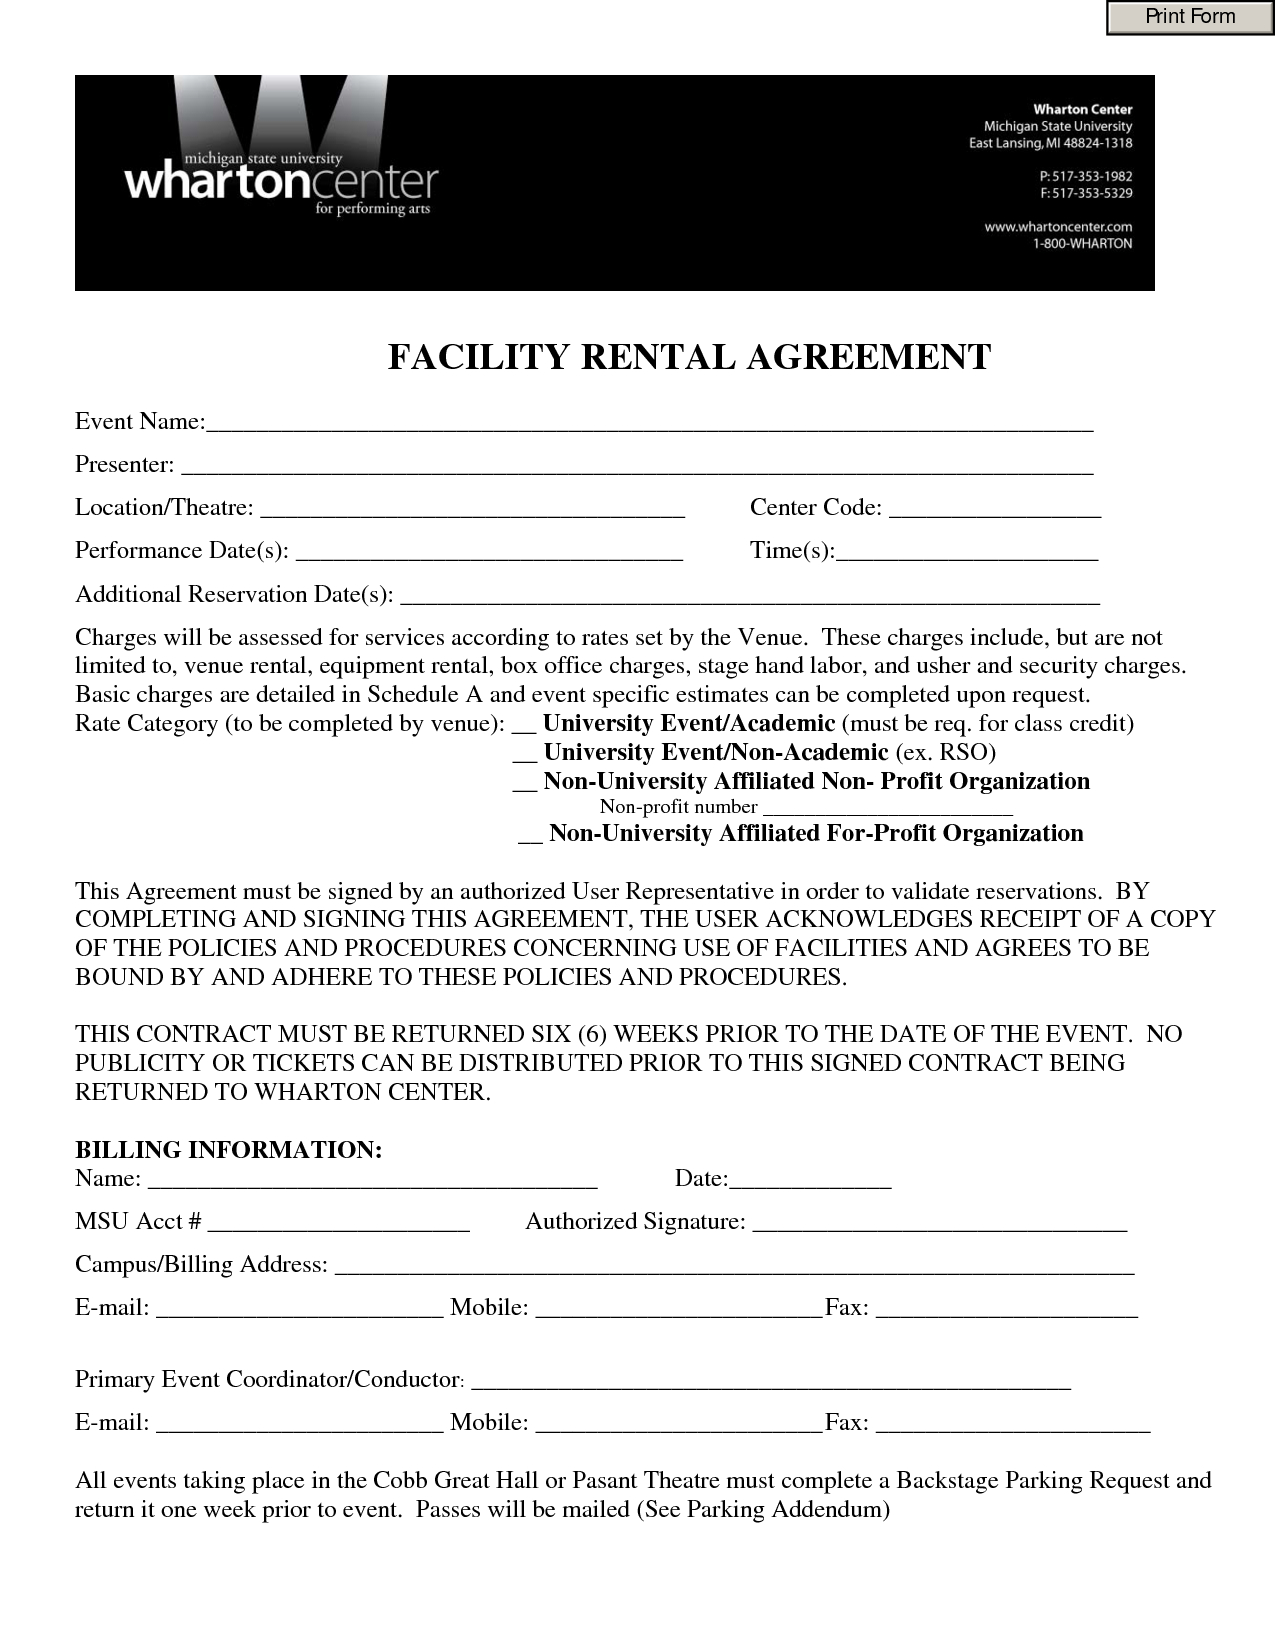 Event Contract Template  Invitation Templates  Facility Rental Throughout Free Facility Rental Agreement Template